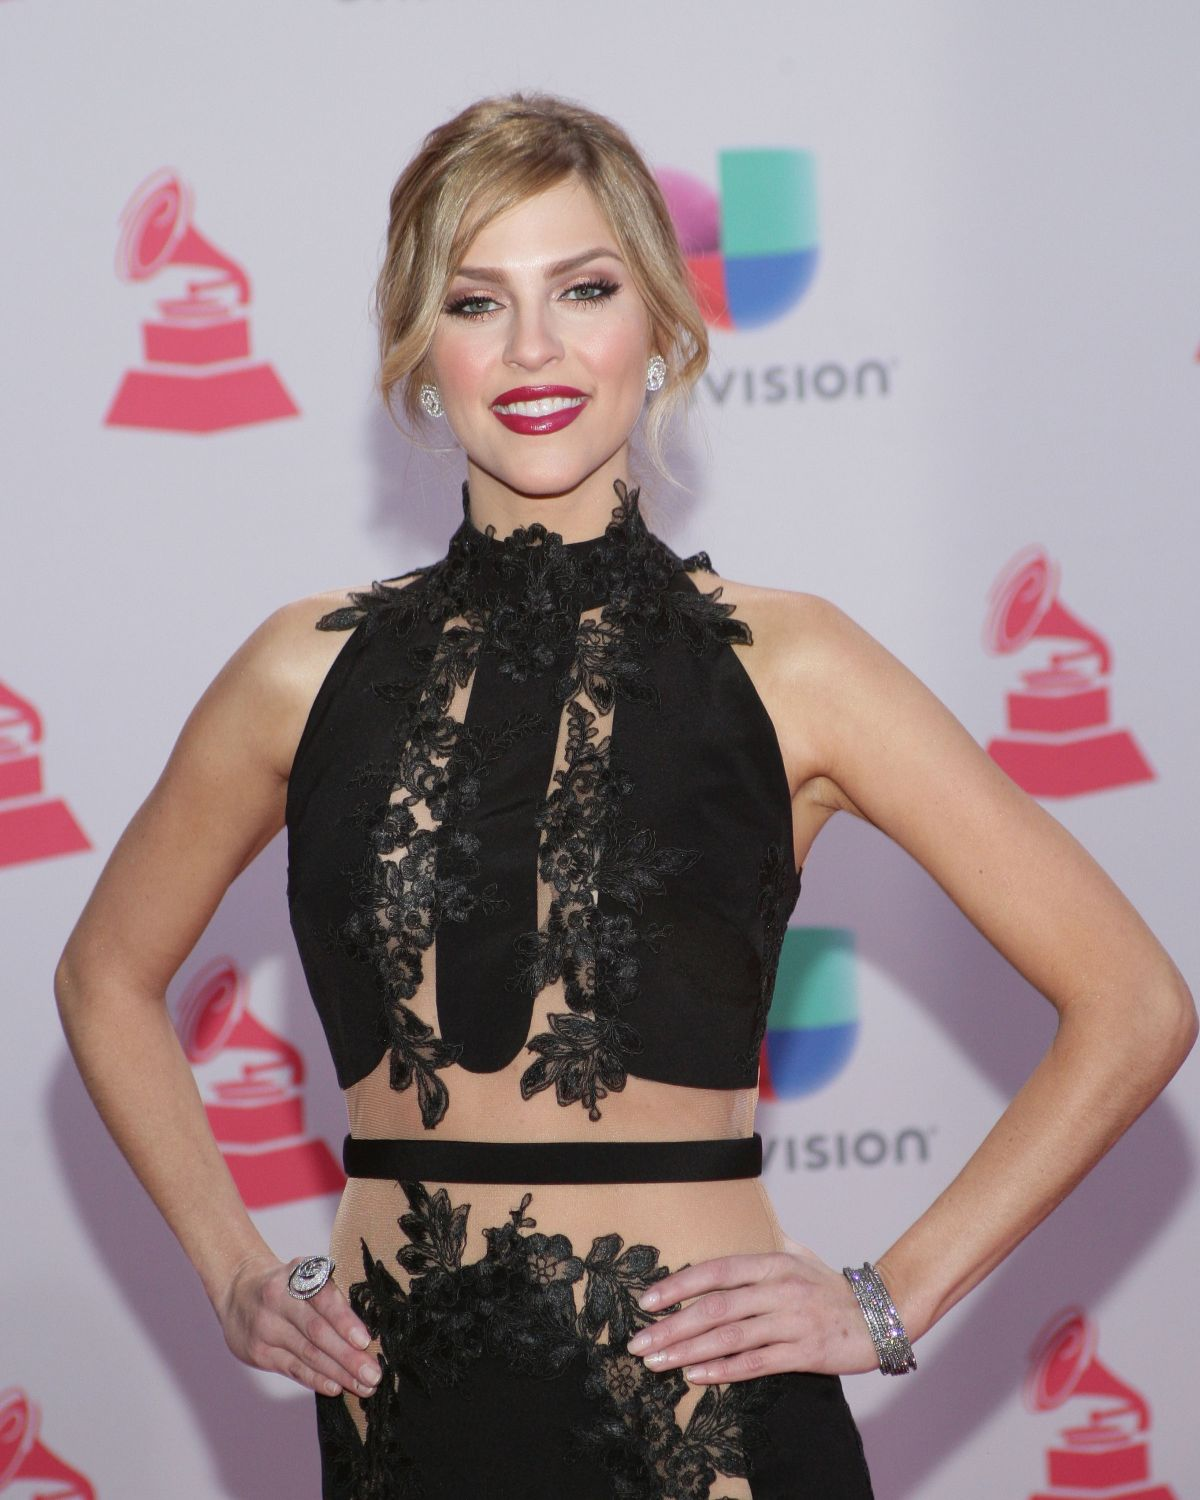 DANIELA DI GIACOMO at 2015 Latin Grammy Awards in Las Vegas 11/18/2015